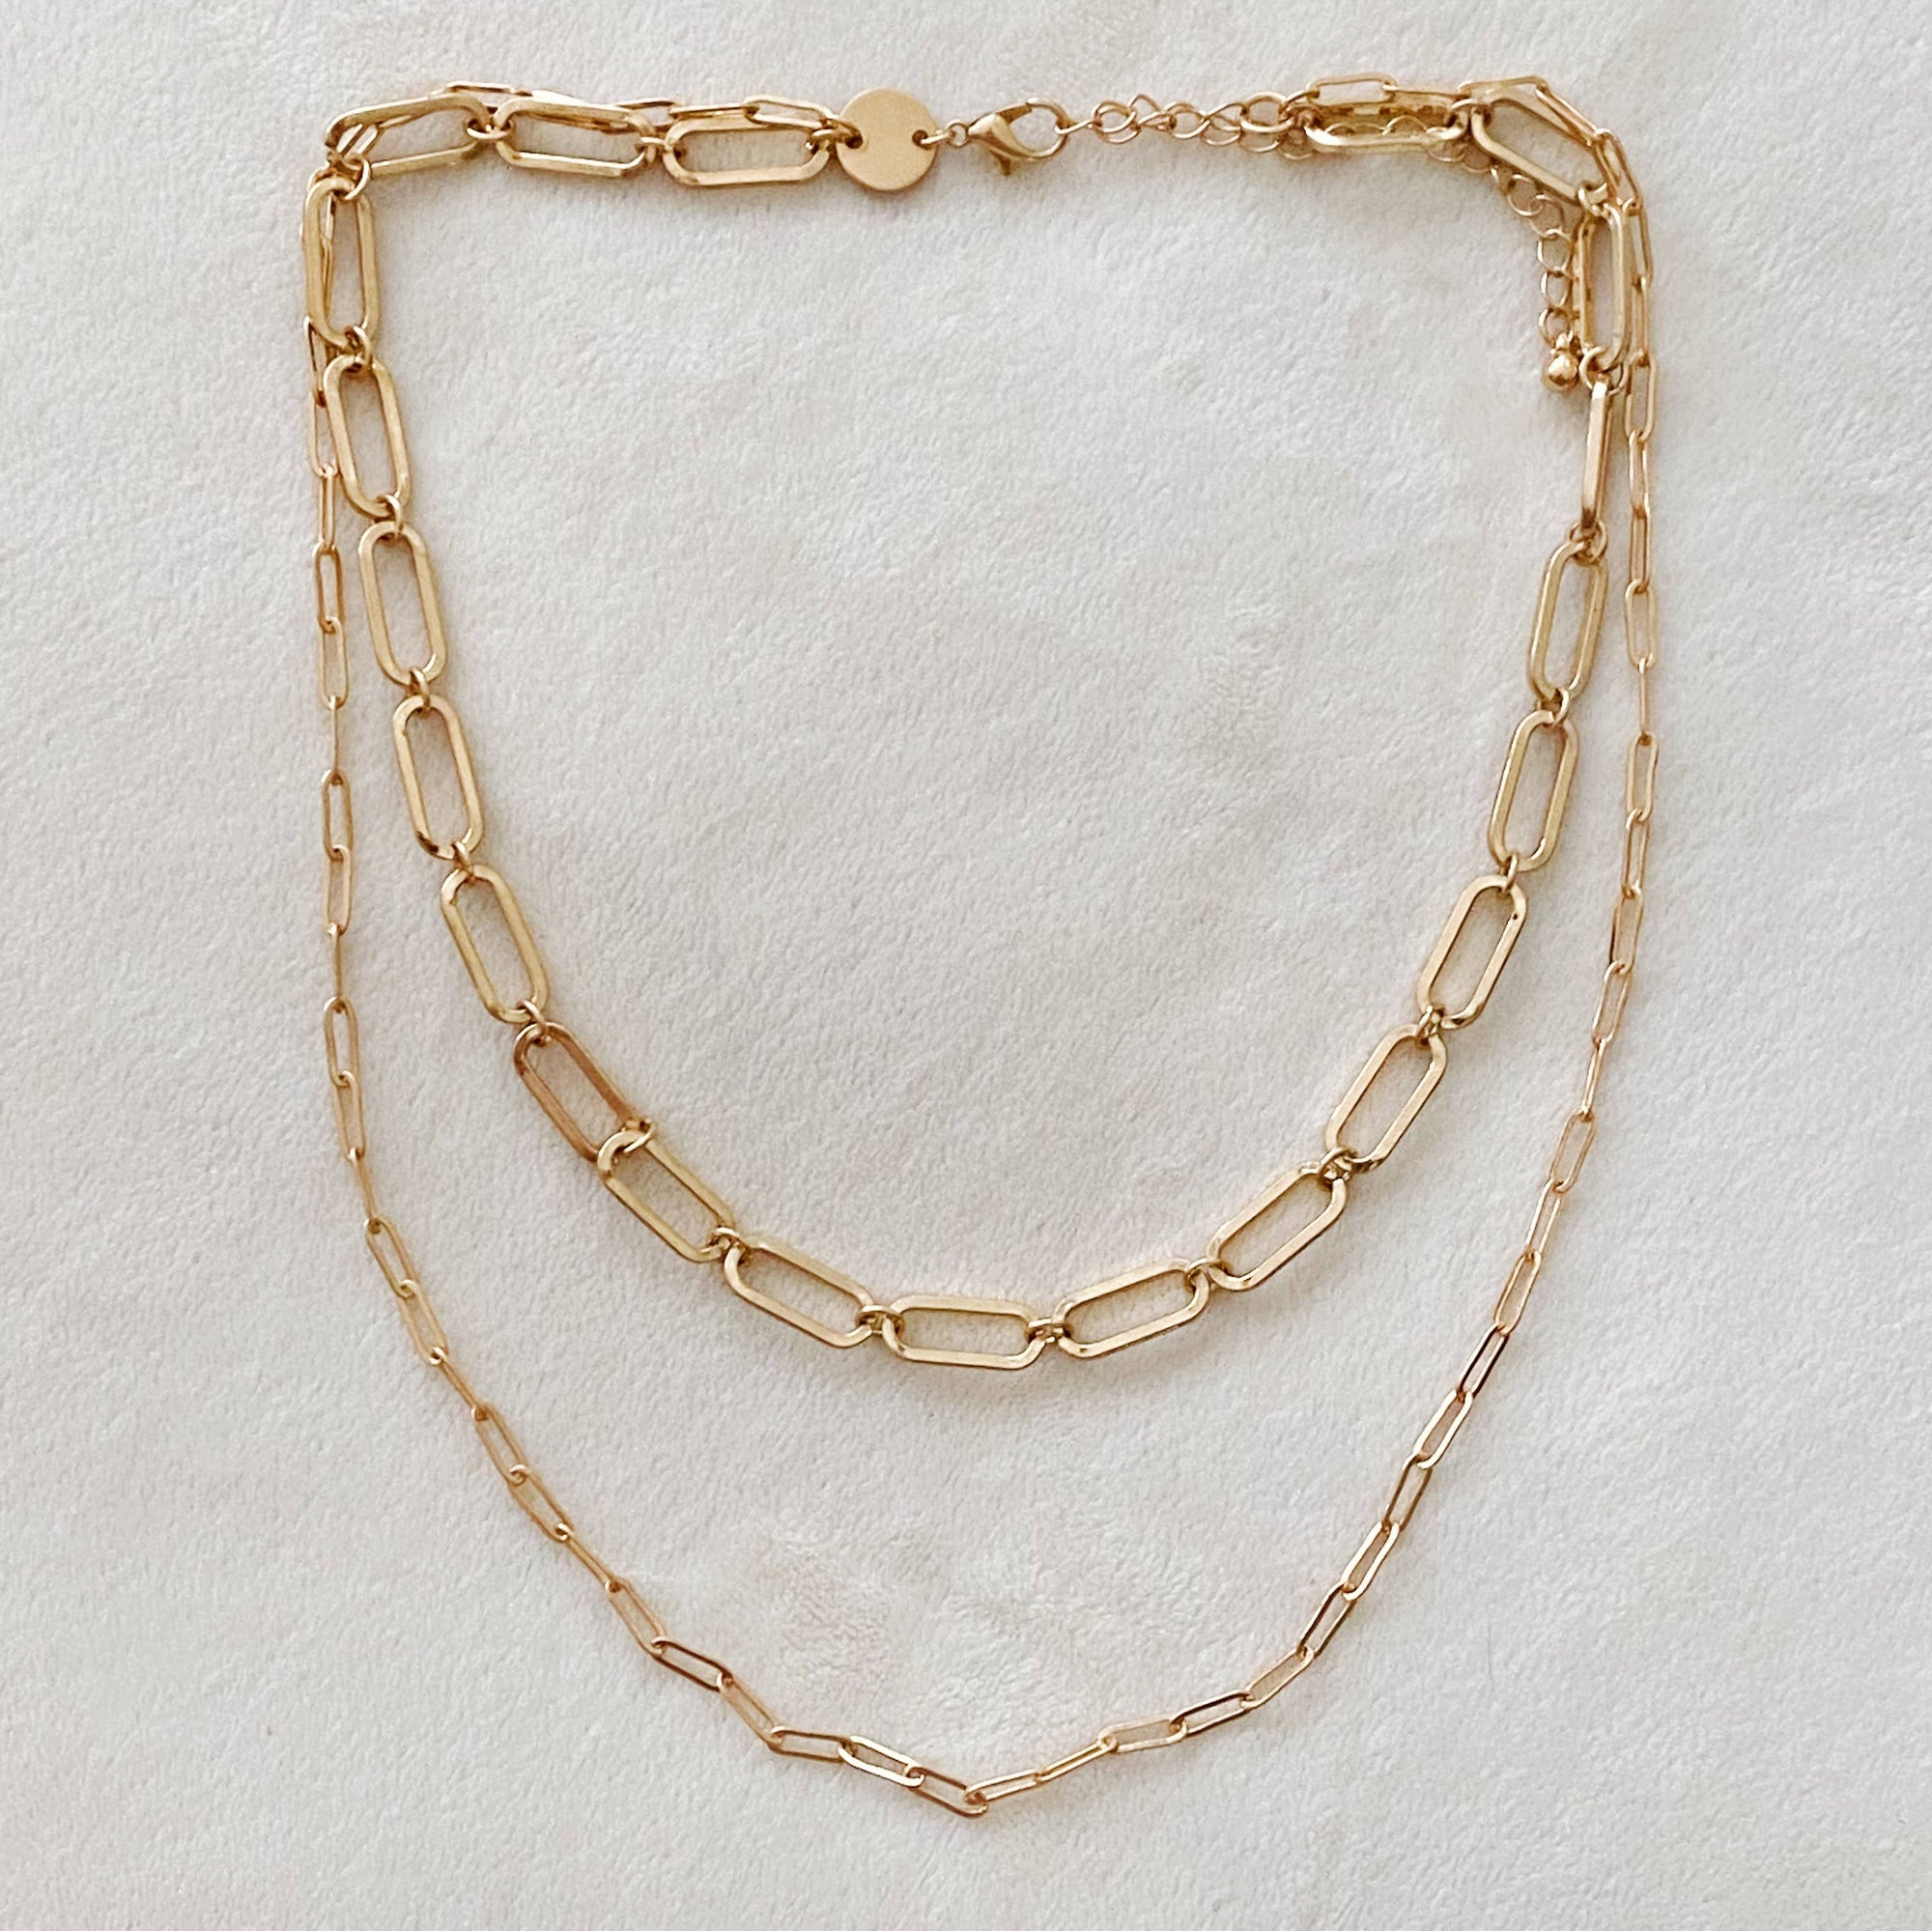 Big & Small Double Chain Link Necklace